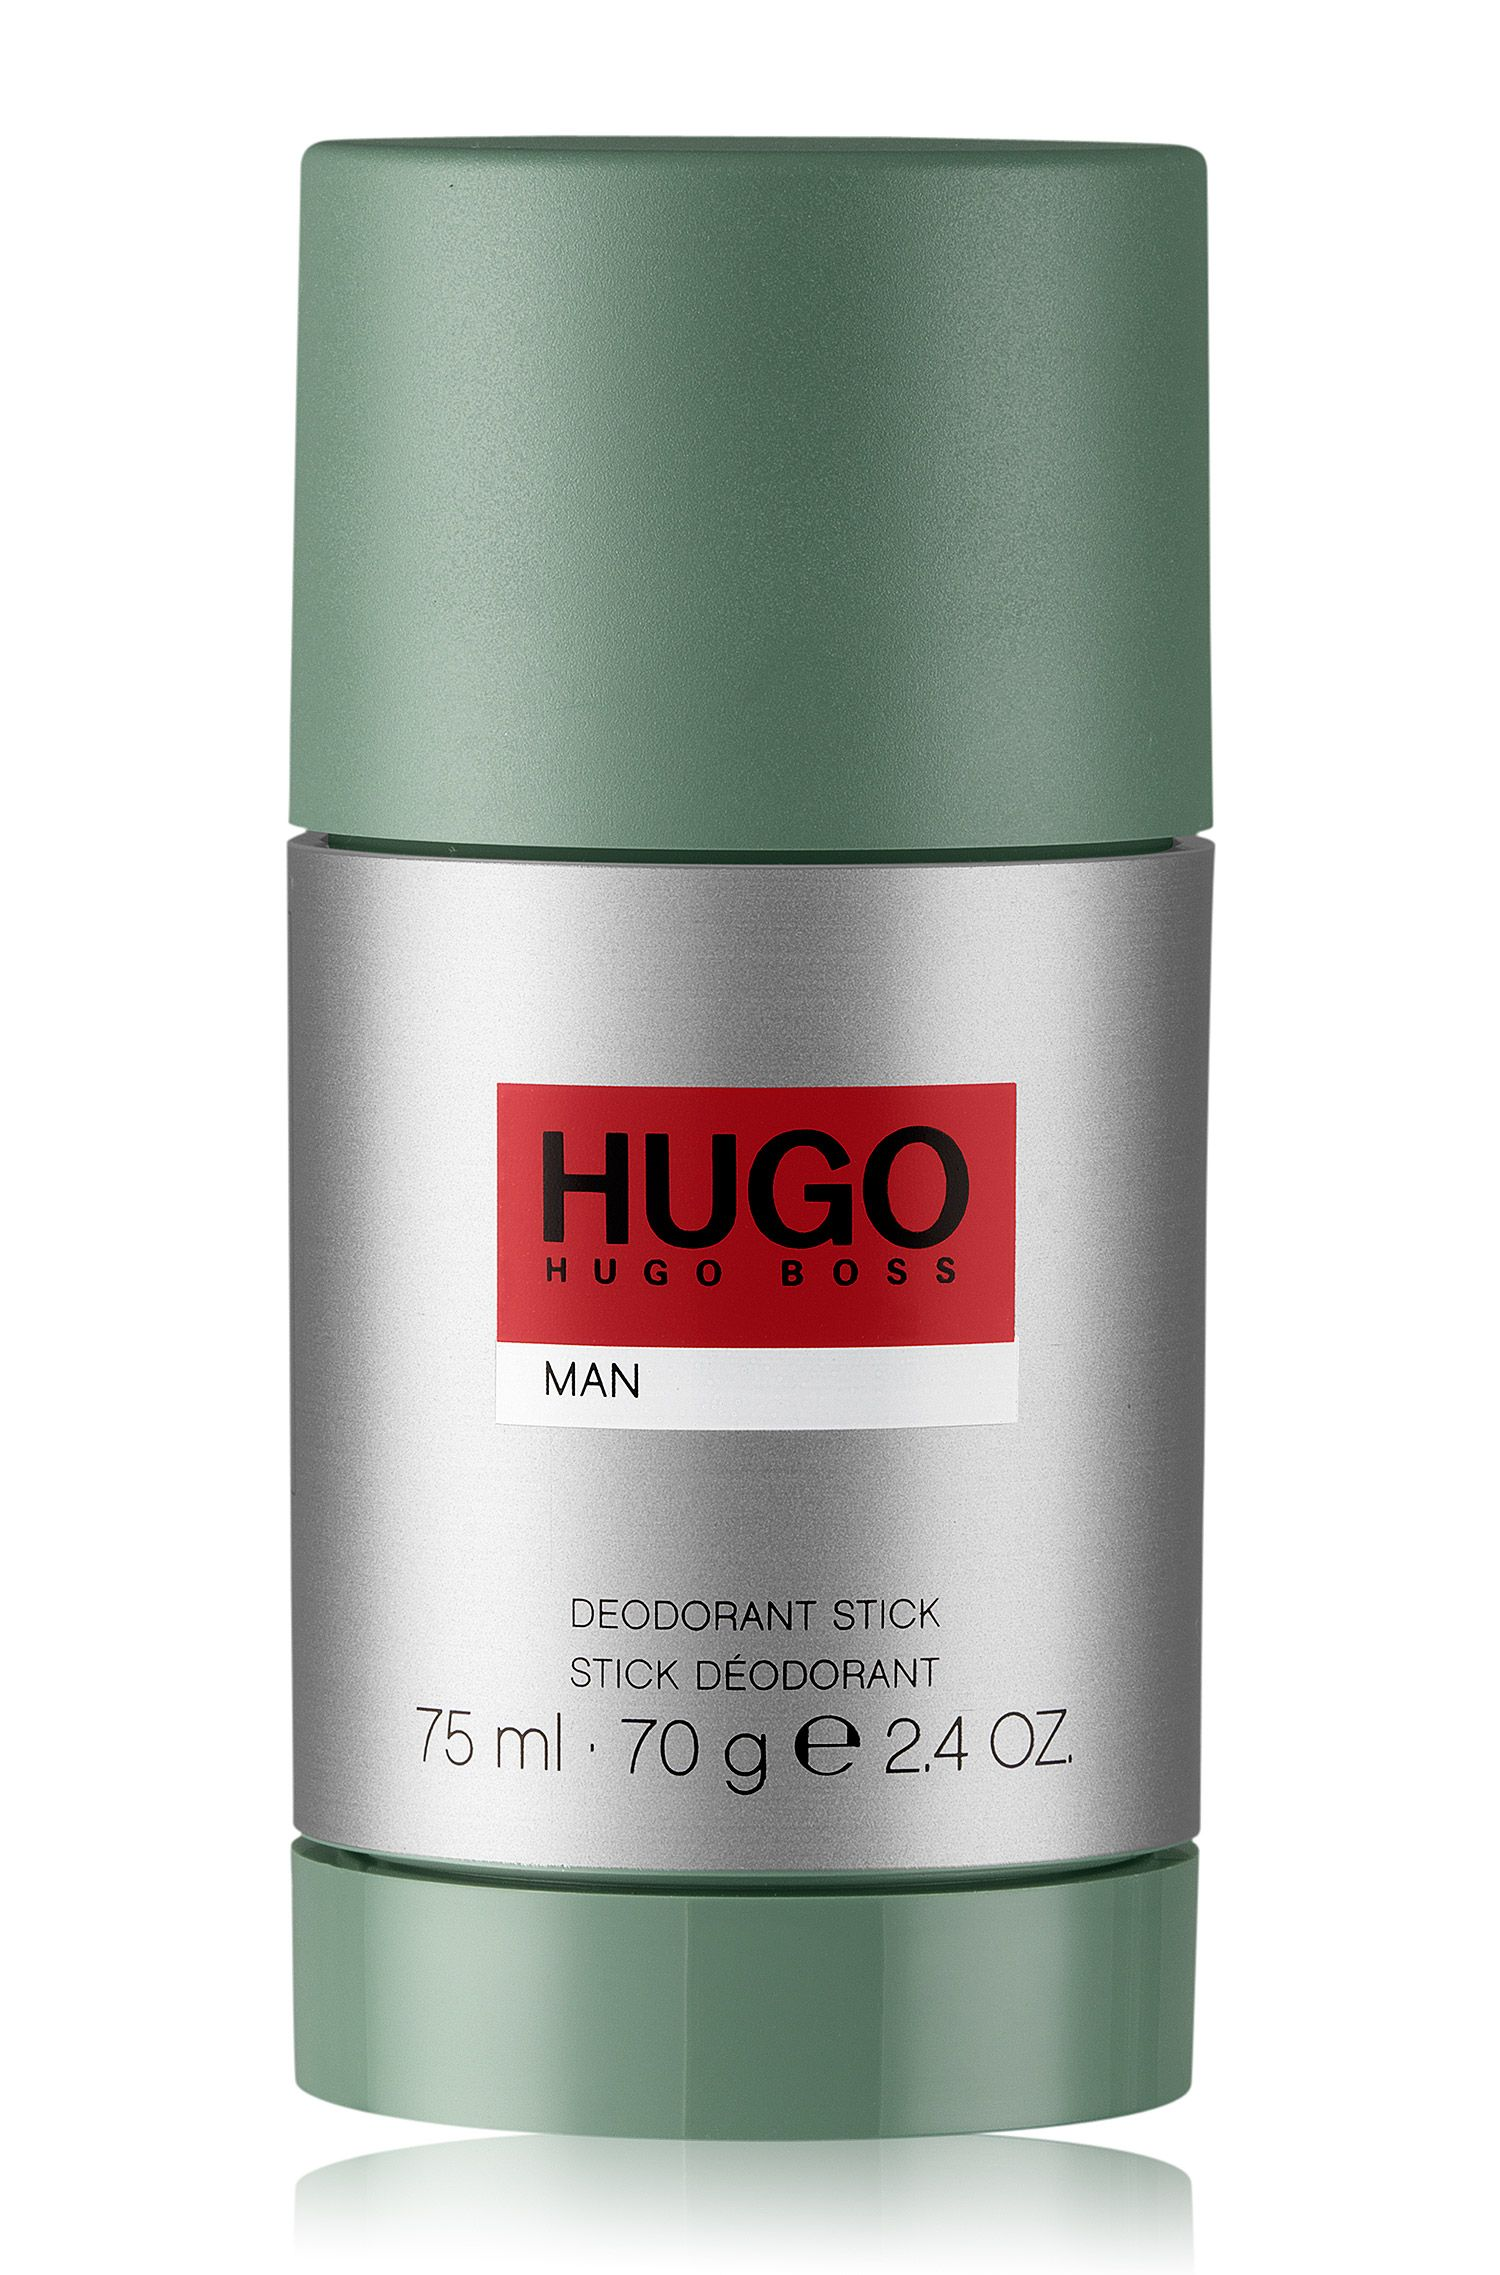 HUGO Man Deostick 75 ml